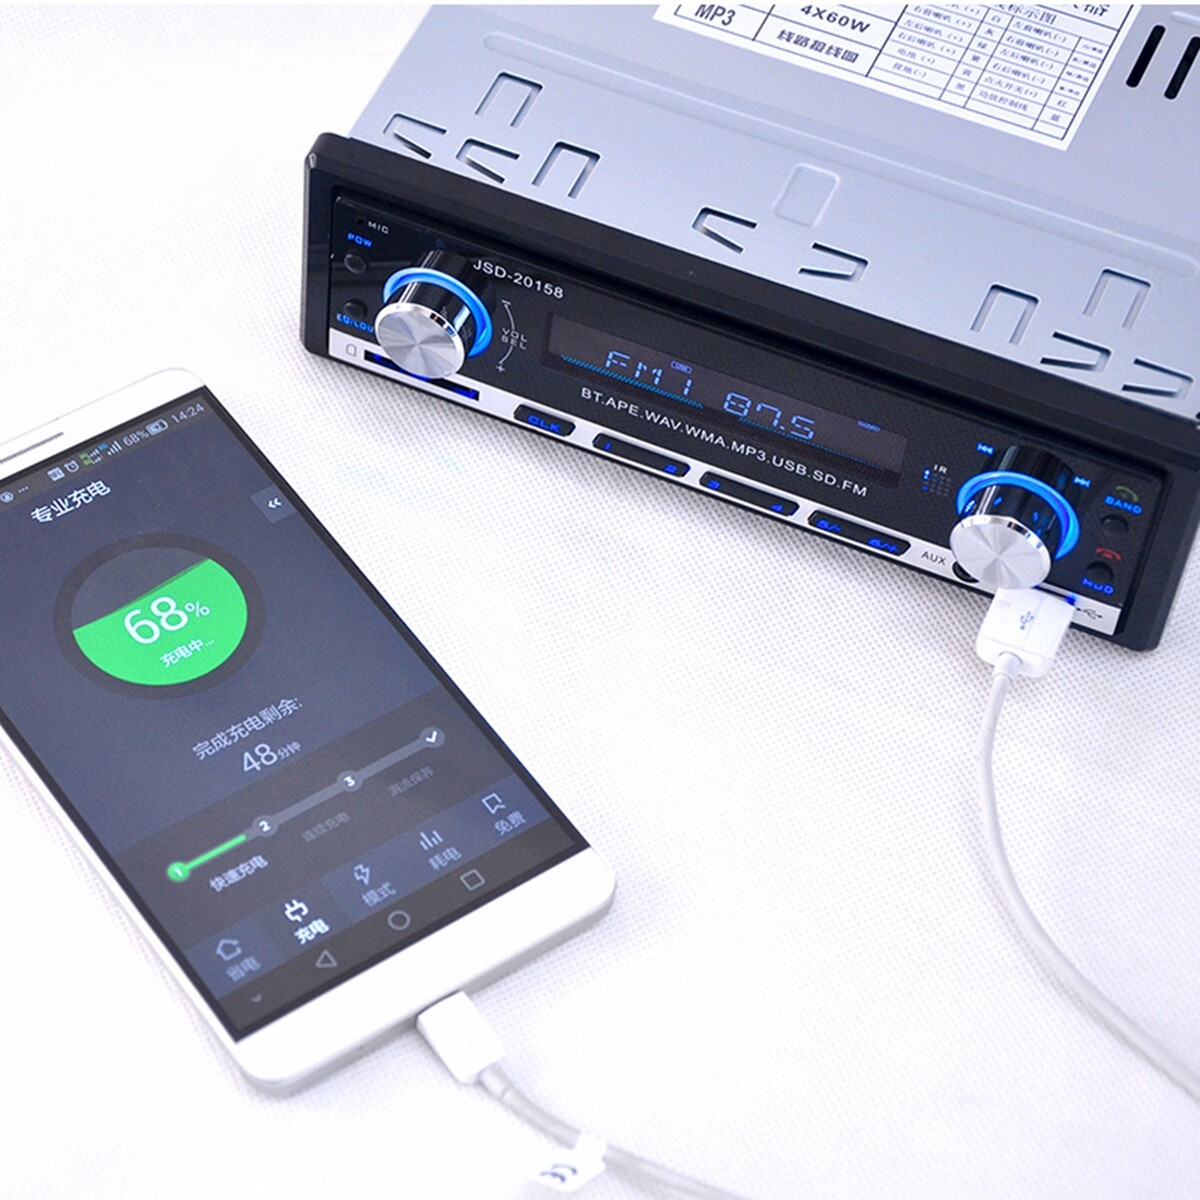 bluetooth car stereo mp3 player usb end 11 2 2018 10 15 pm. Black Bedroom Furniture Sets. Home Design Ideas